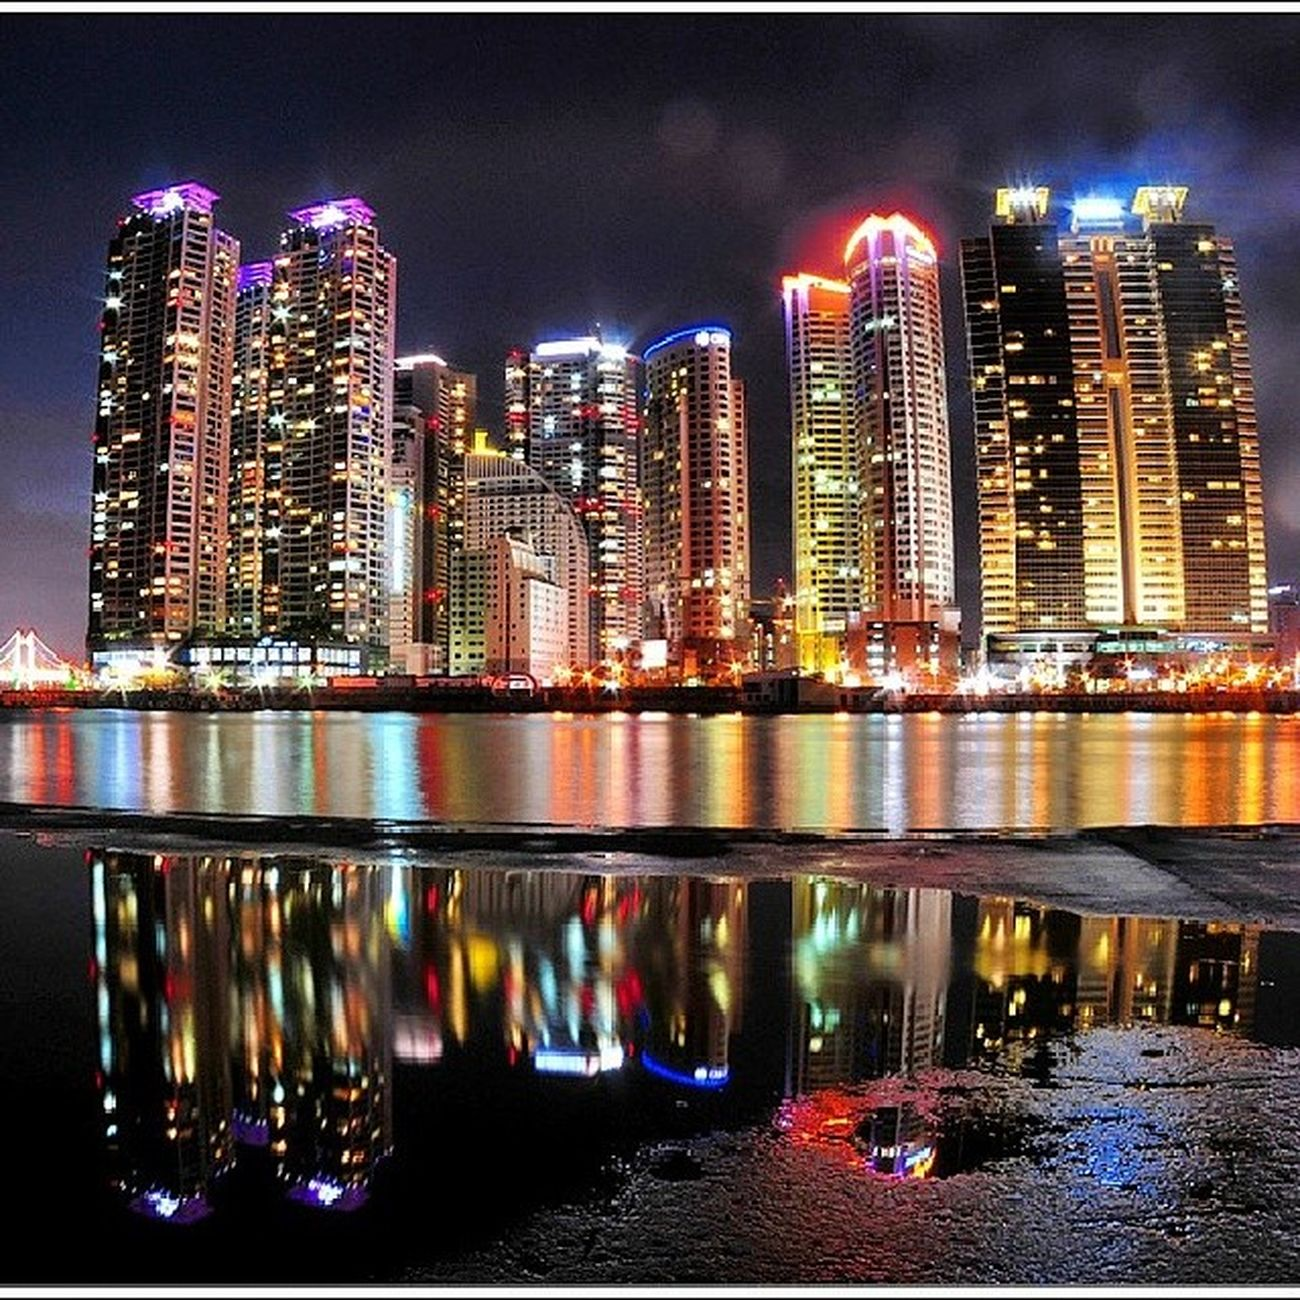 해운대  마린시티  동백섬 Marine_city Haeundae Busan Dongbaek_island night_view instagram_ios